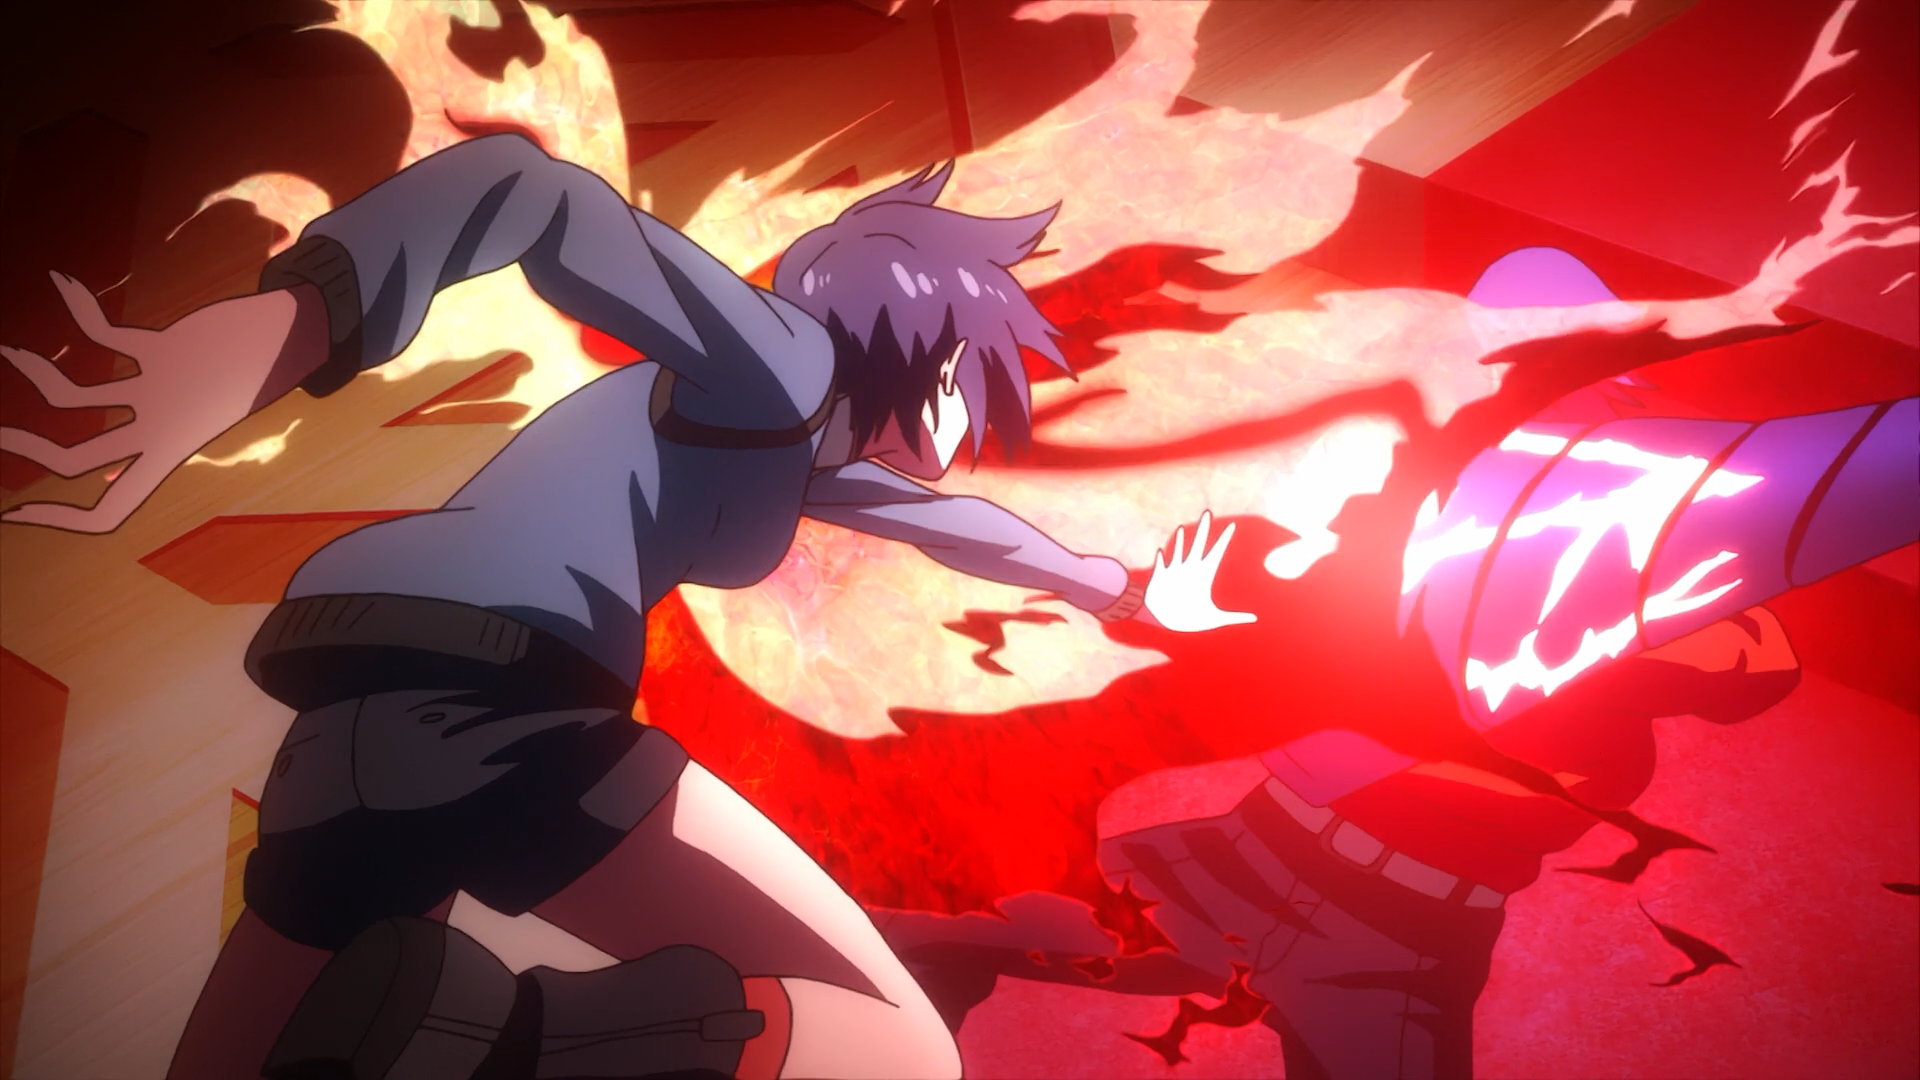 Datei:Shuu defending against Touka's attack.png